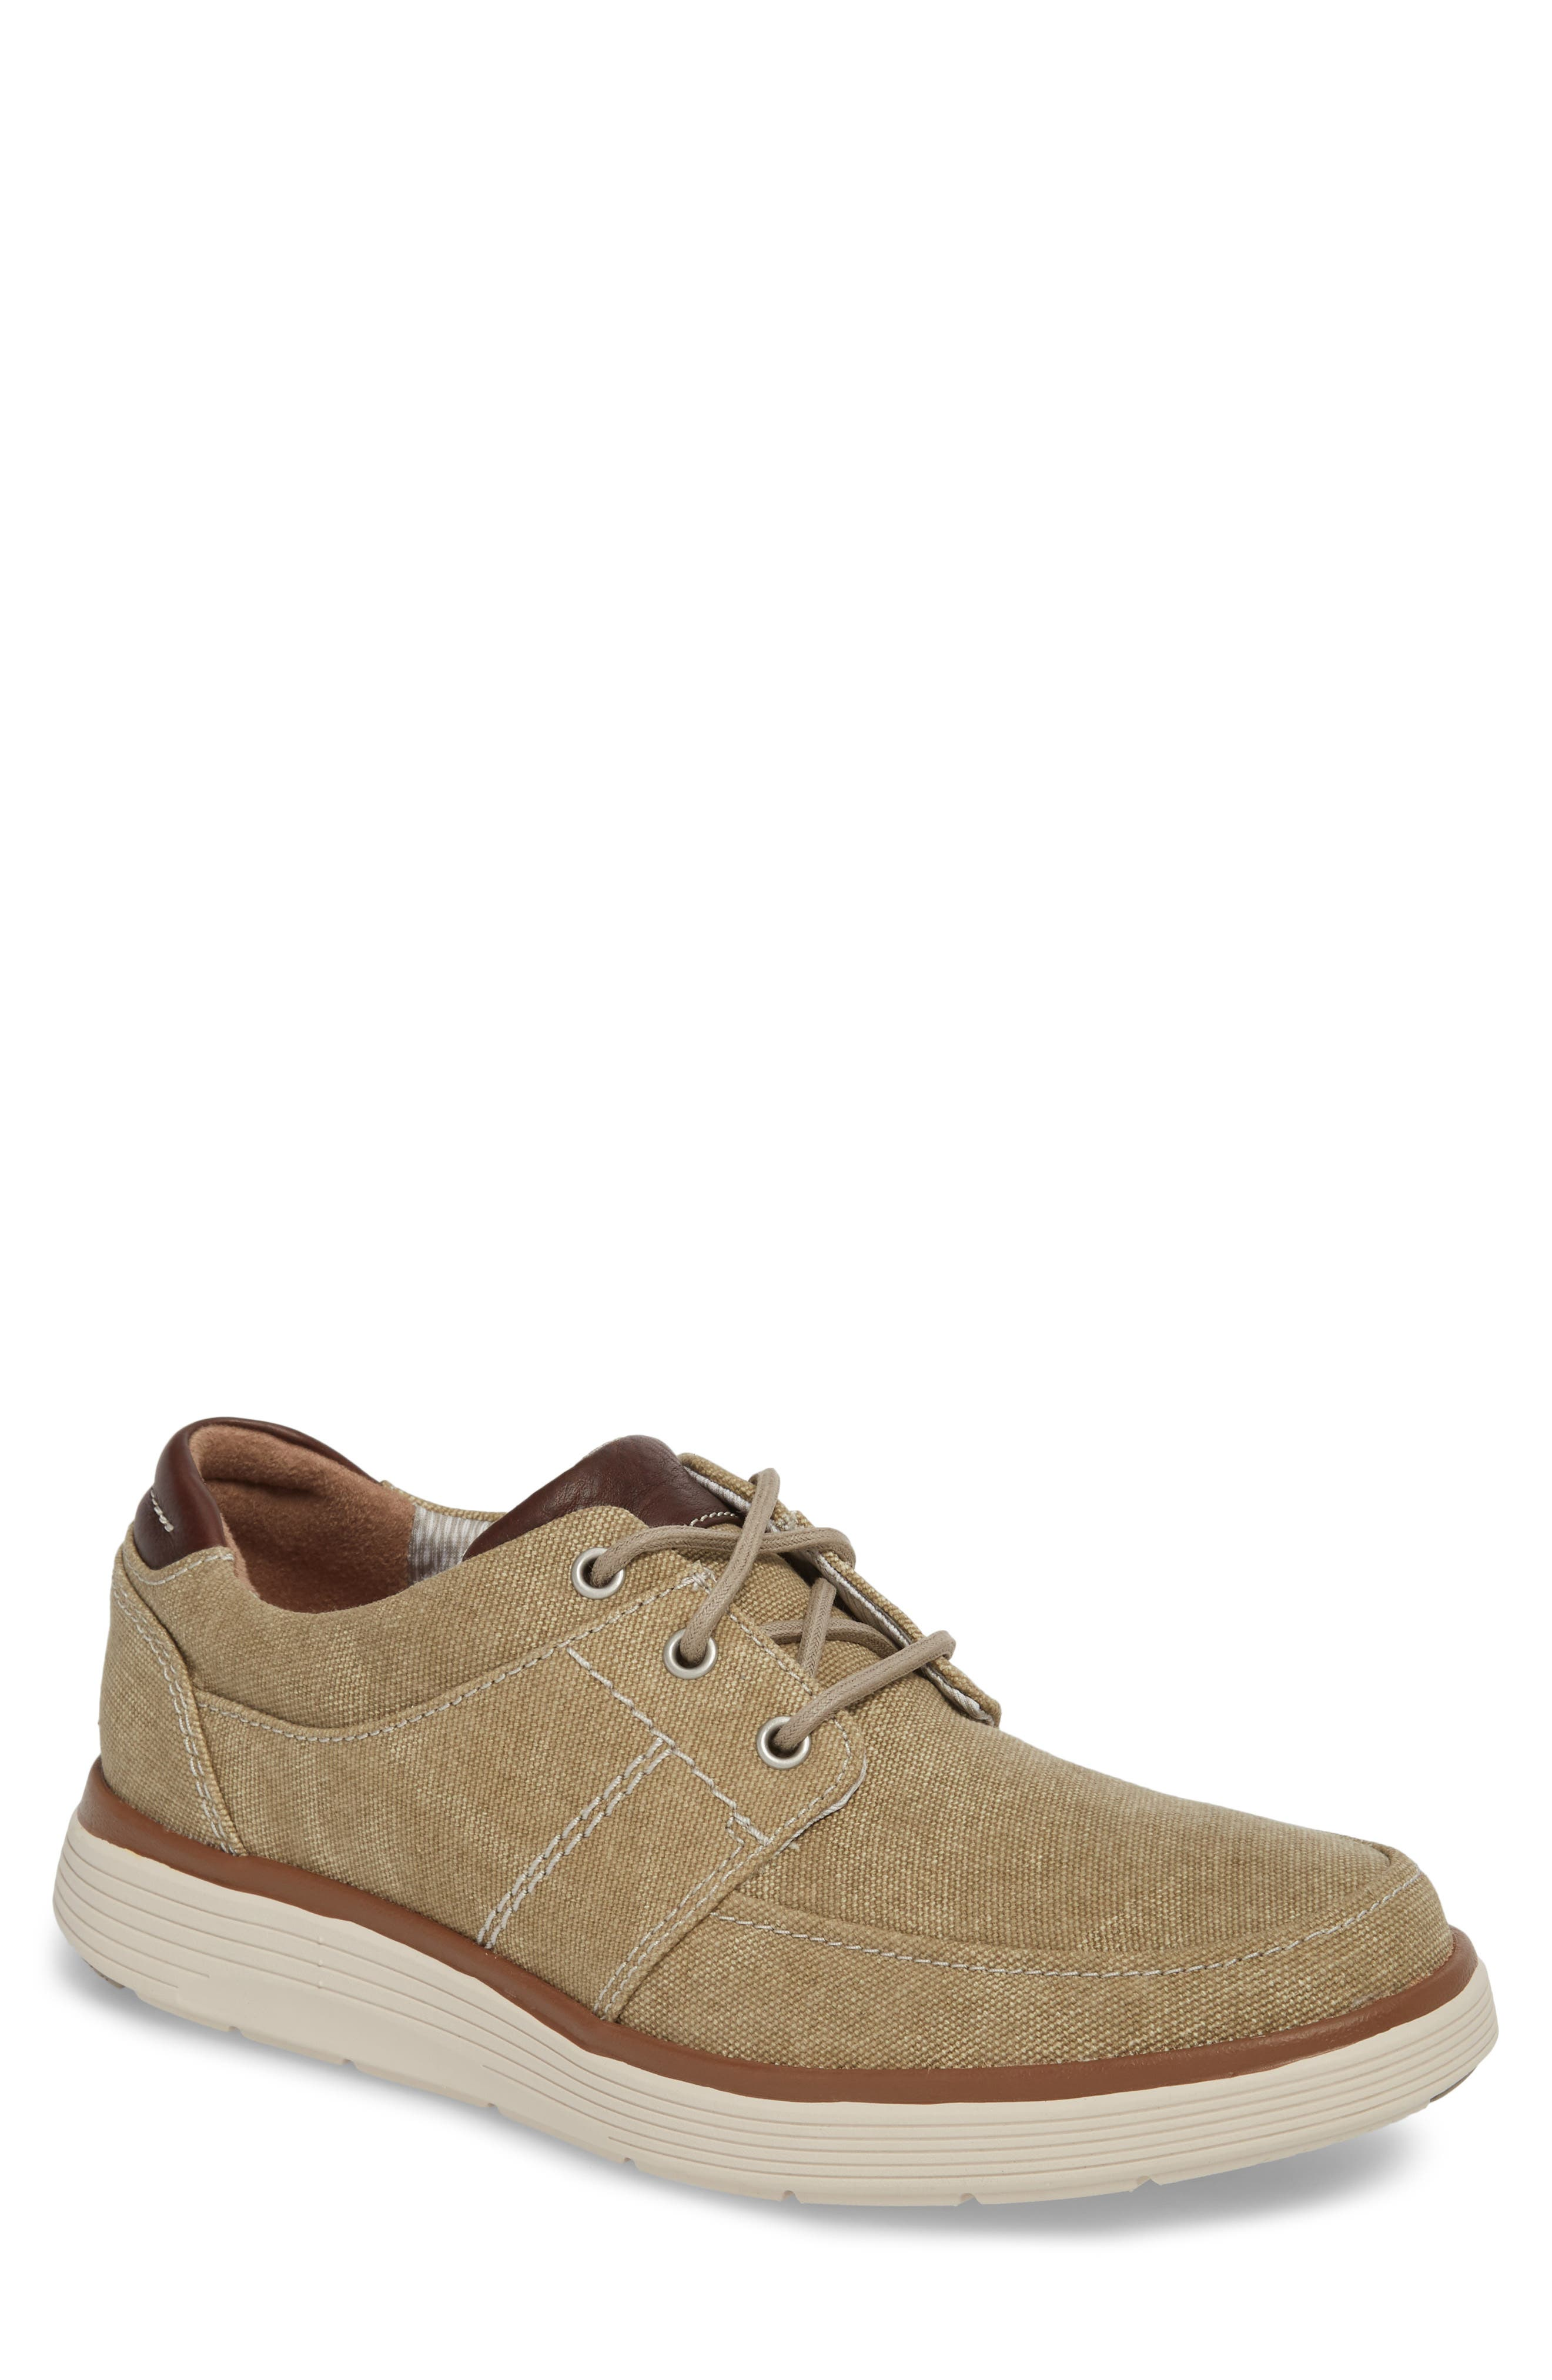 Clarks<sup>®</sup> Unabode Form Sneaker,                             Main thumbnail 1, color,                             Sand Fabric